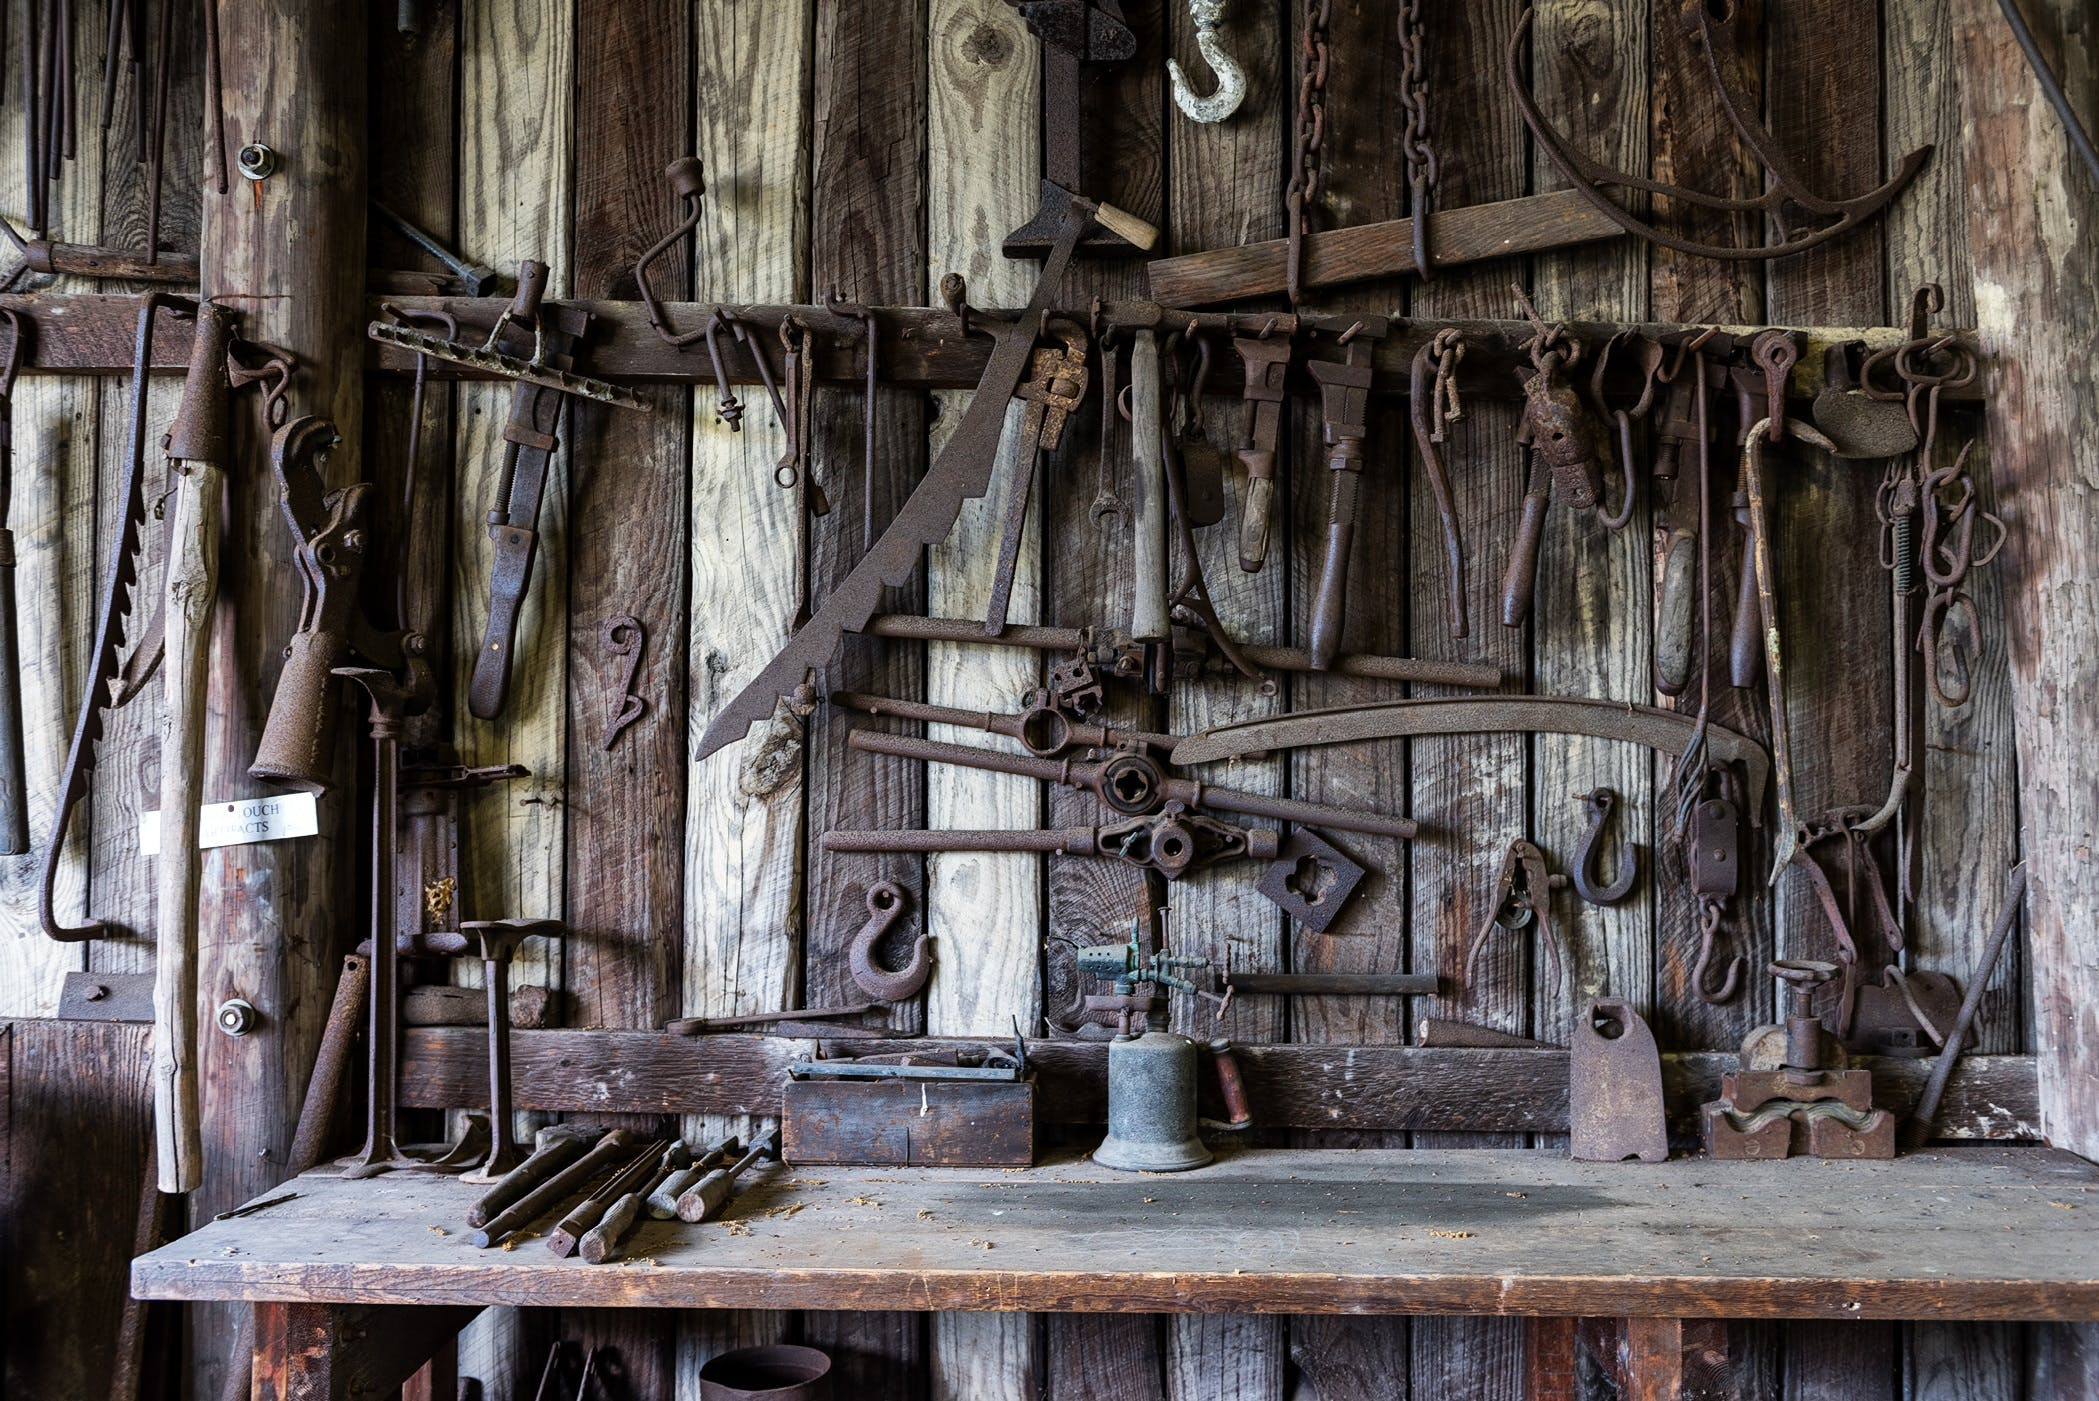 Black Metal Tools Hanged on a Rack Near Table